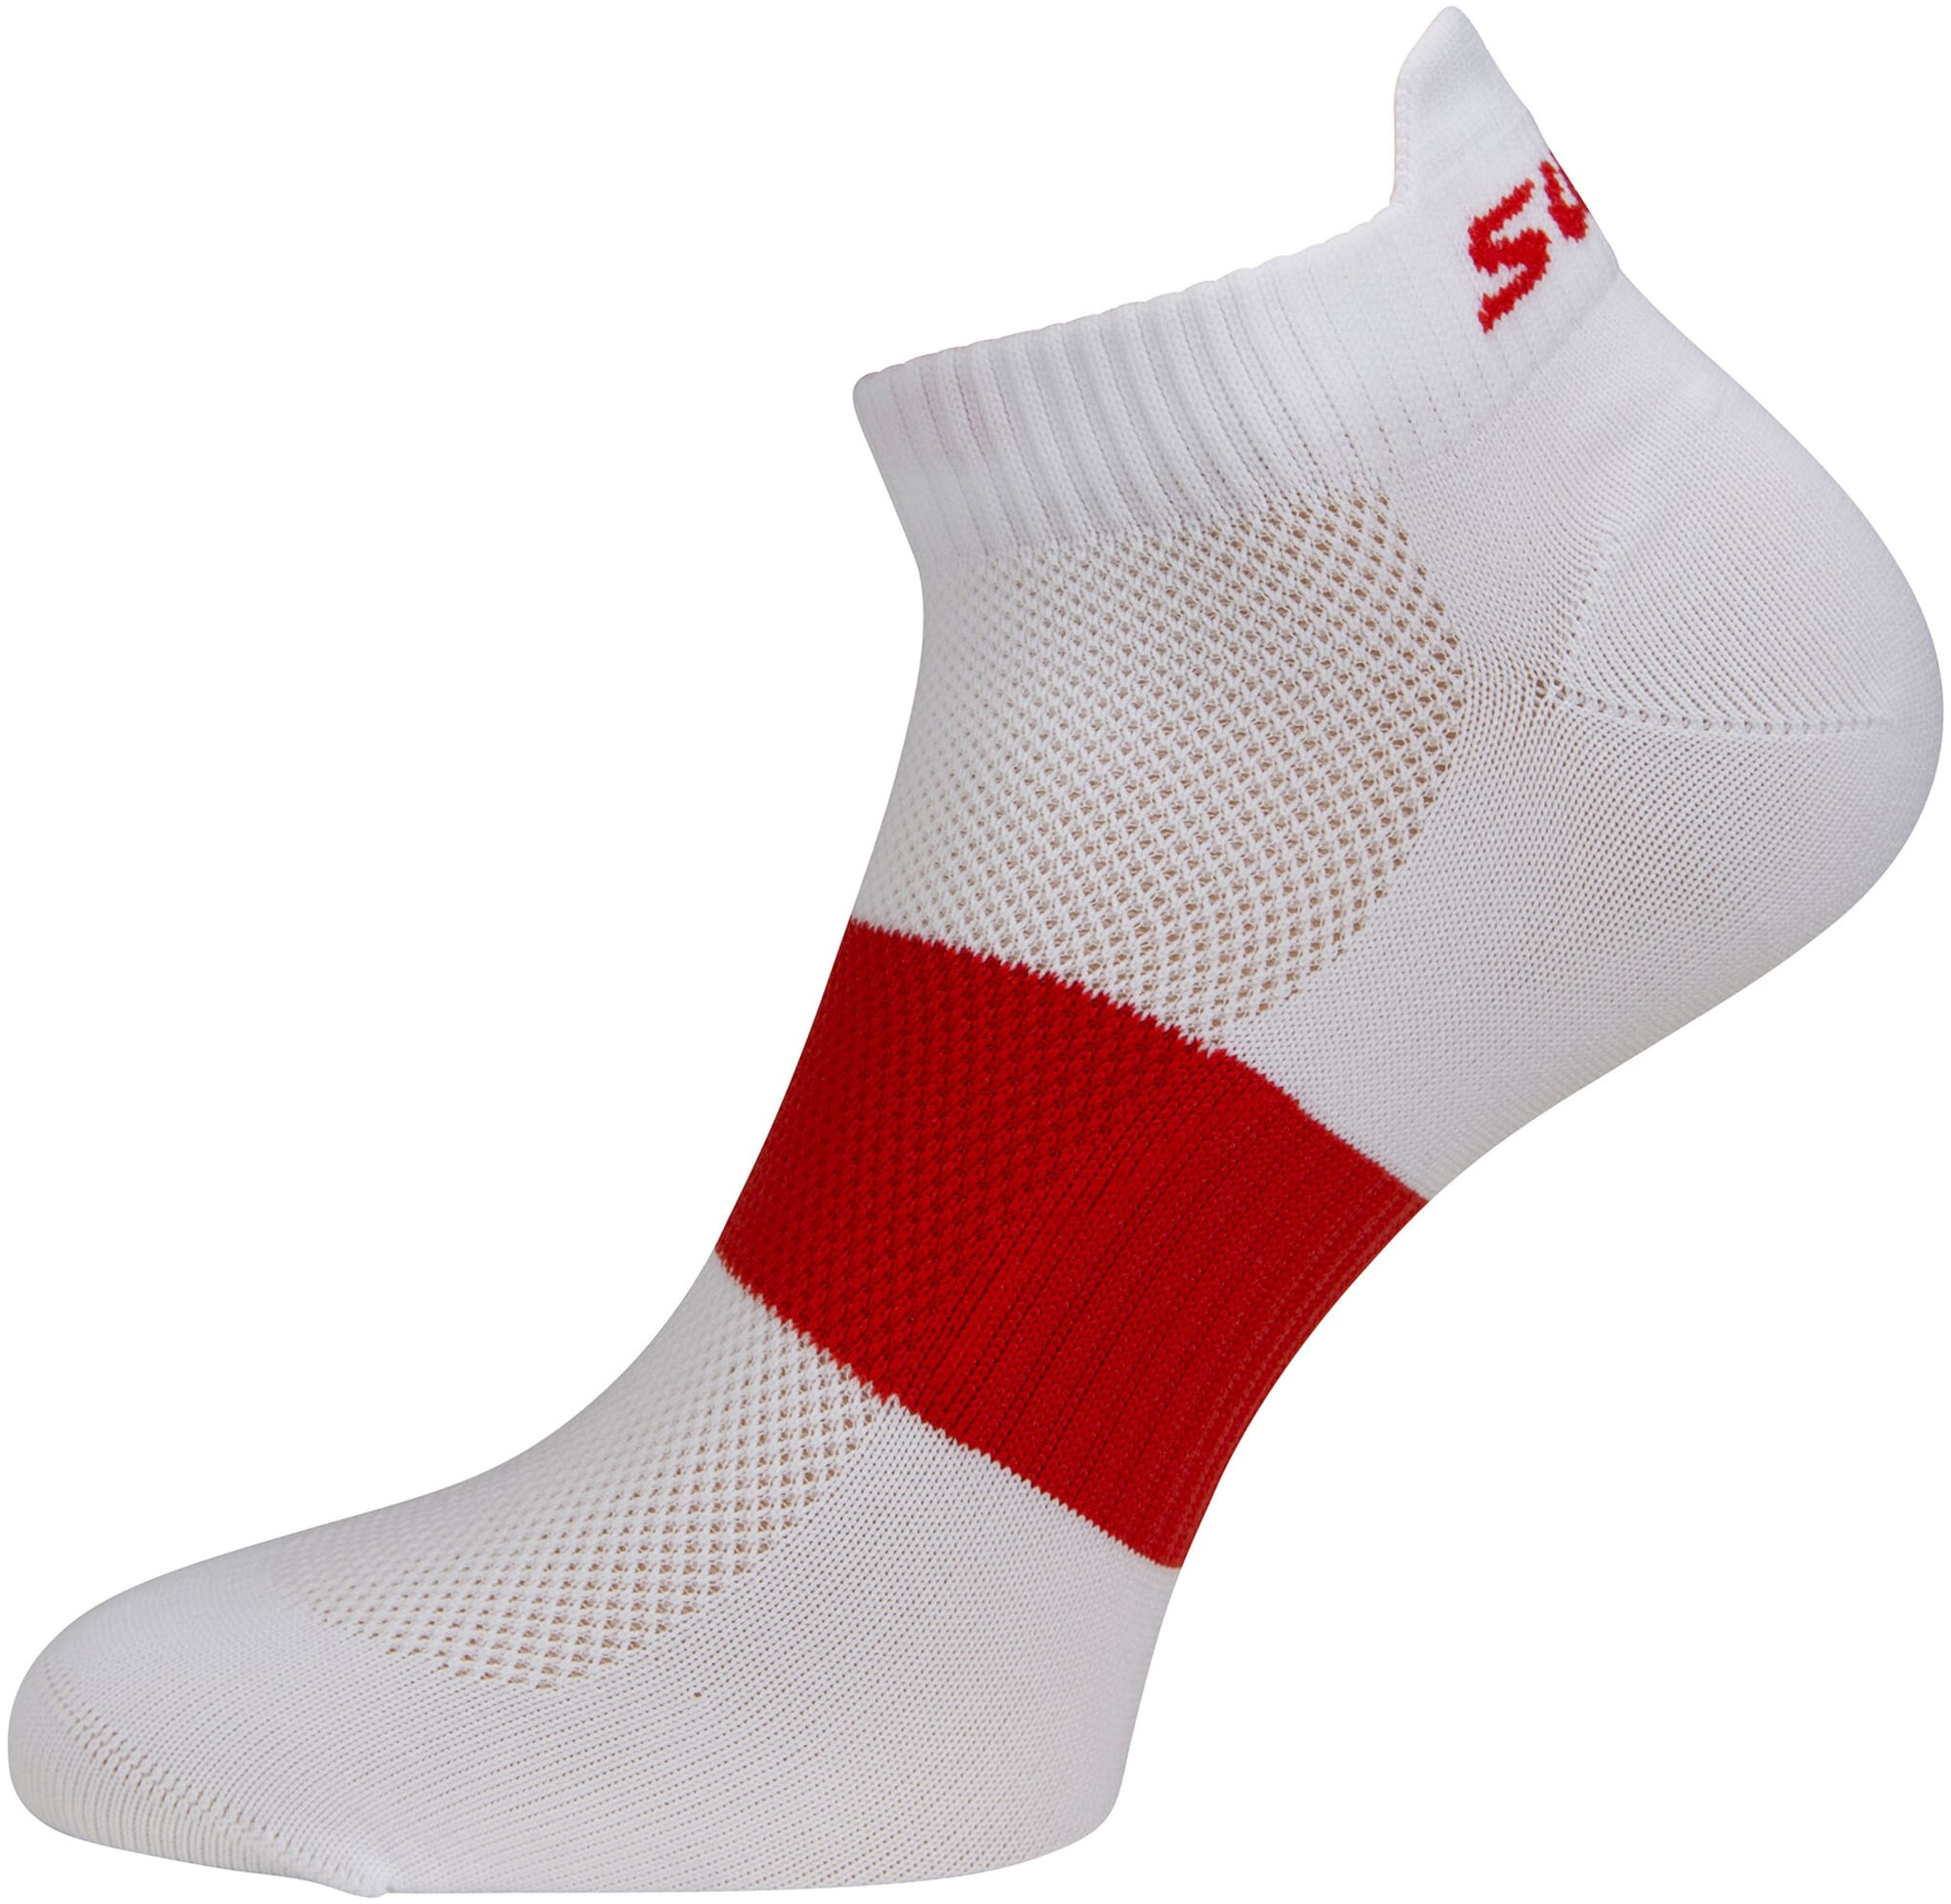 Active ankle sock 3 pk